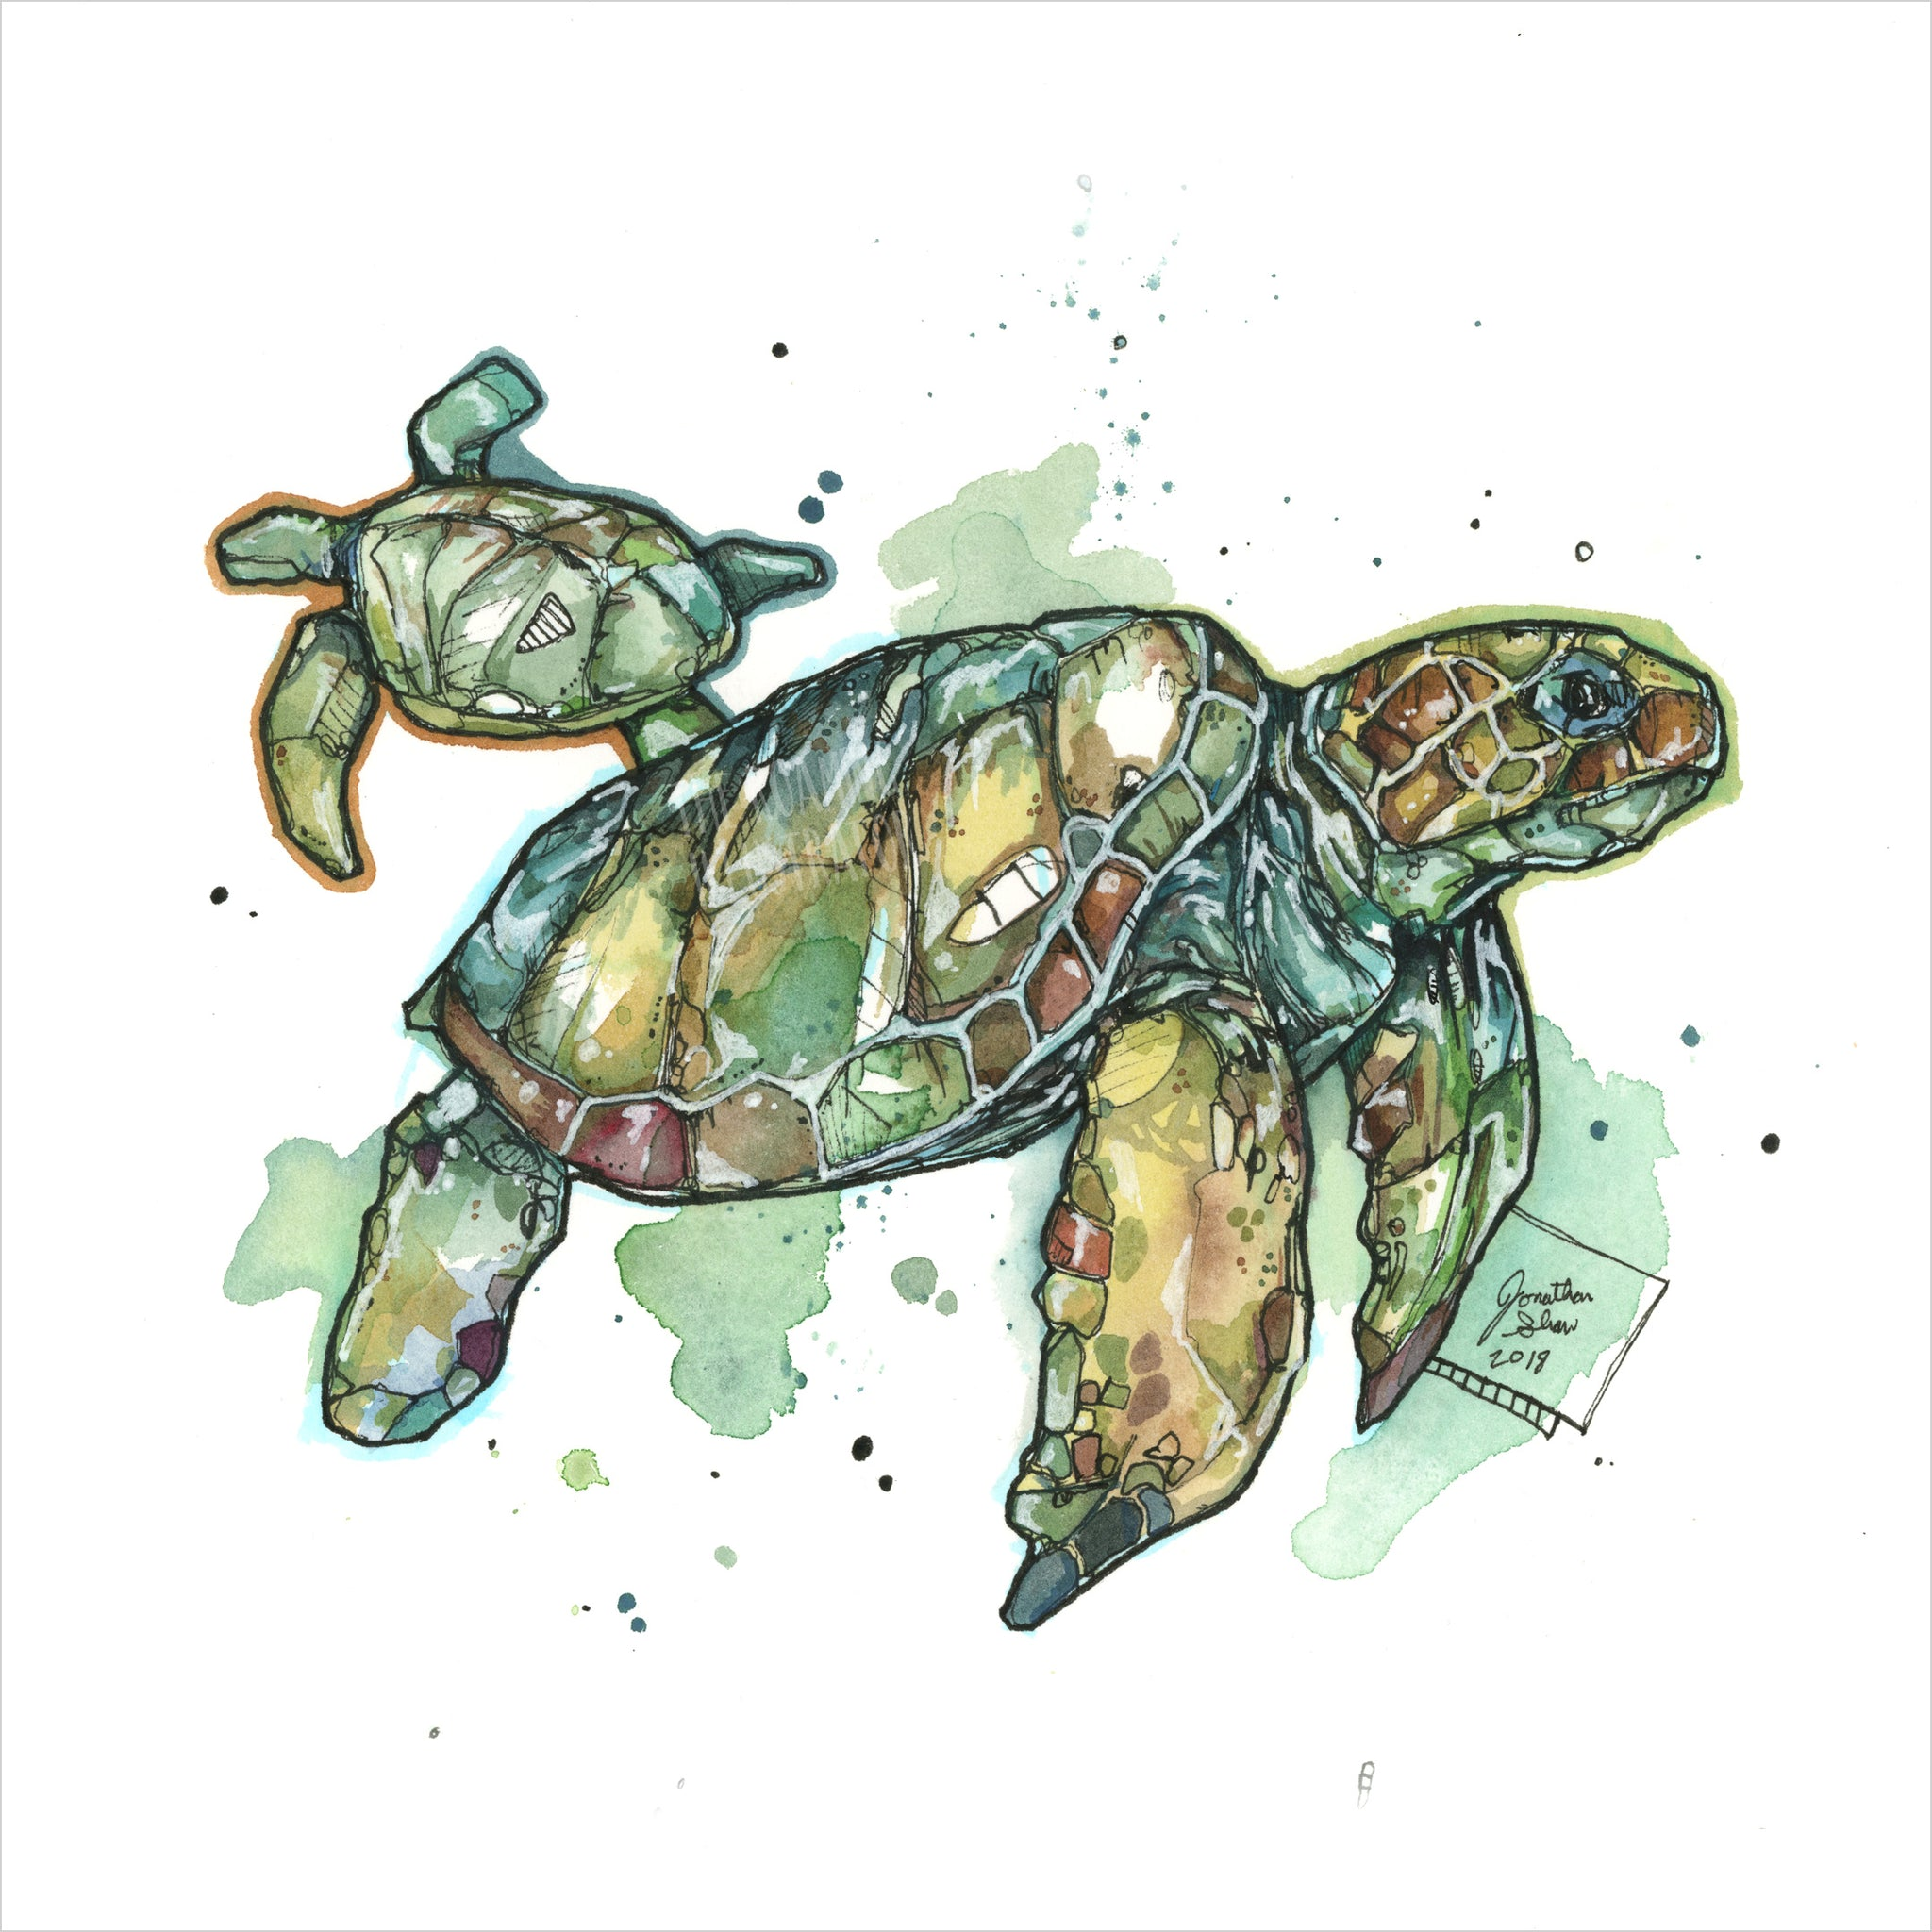 """Sea Turtles"" - 8x10 Reproduction print"